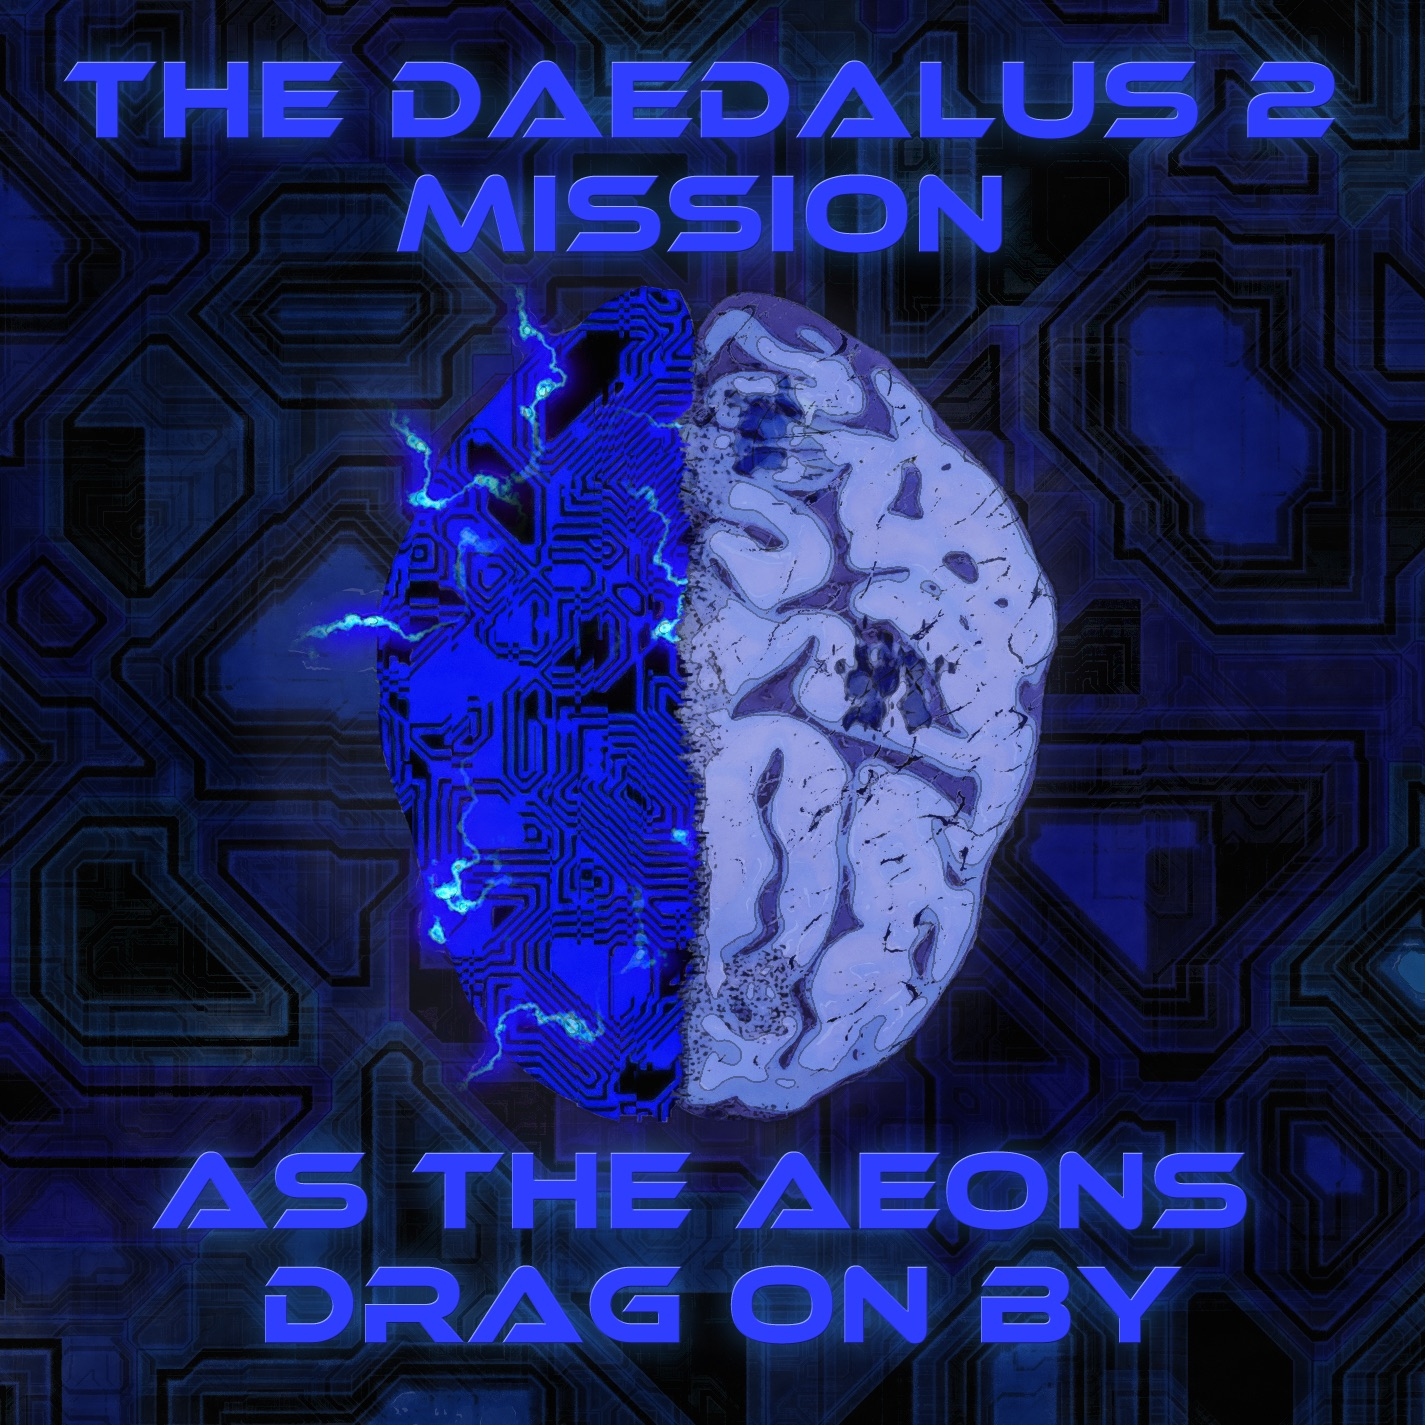 Aeons Drag On By Artwork.jpg